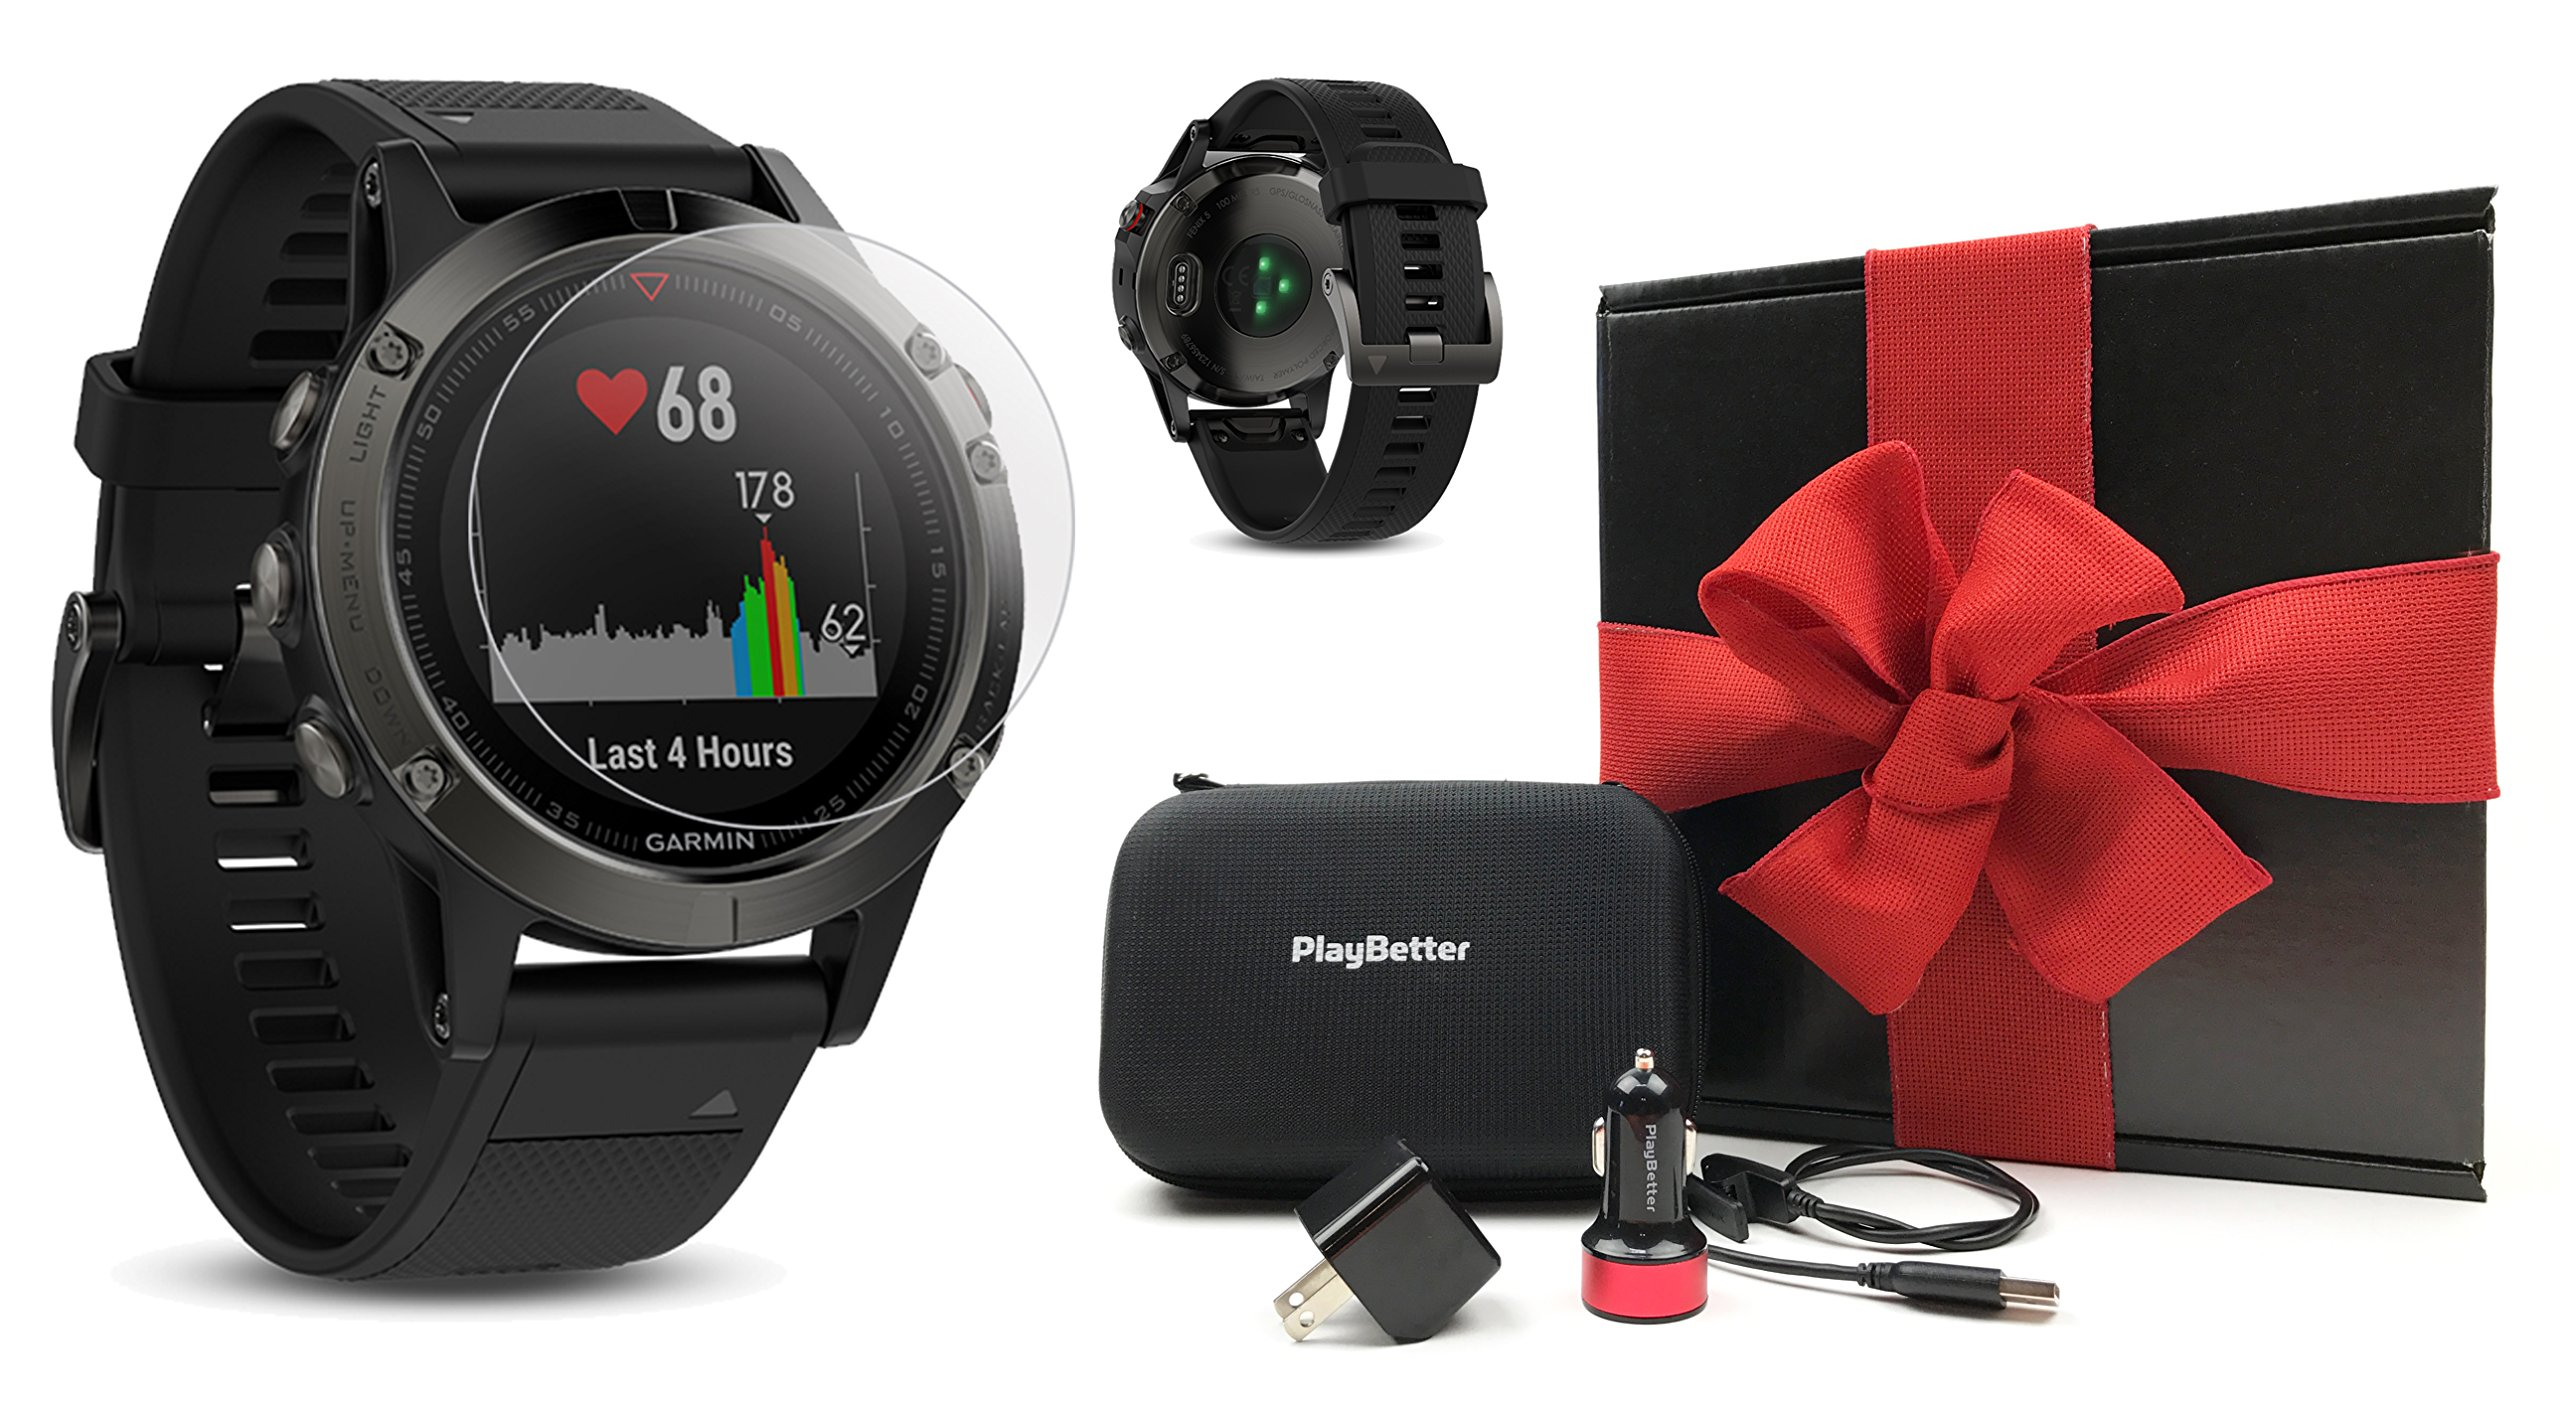 Garmin fenix 5 (Slate Gray with Black Band) GIFT BOX Bundle | Includes Glass Screen Protector, PlayBetter USB Car/Wall Adapter & Hard Carrying Case | Multi-Sport GPS Watch with Wrist-Heart Rate by PlayBetter (Image #1)